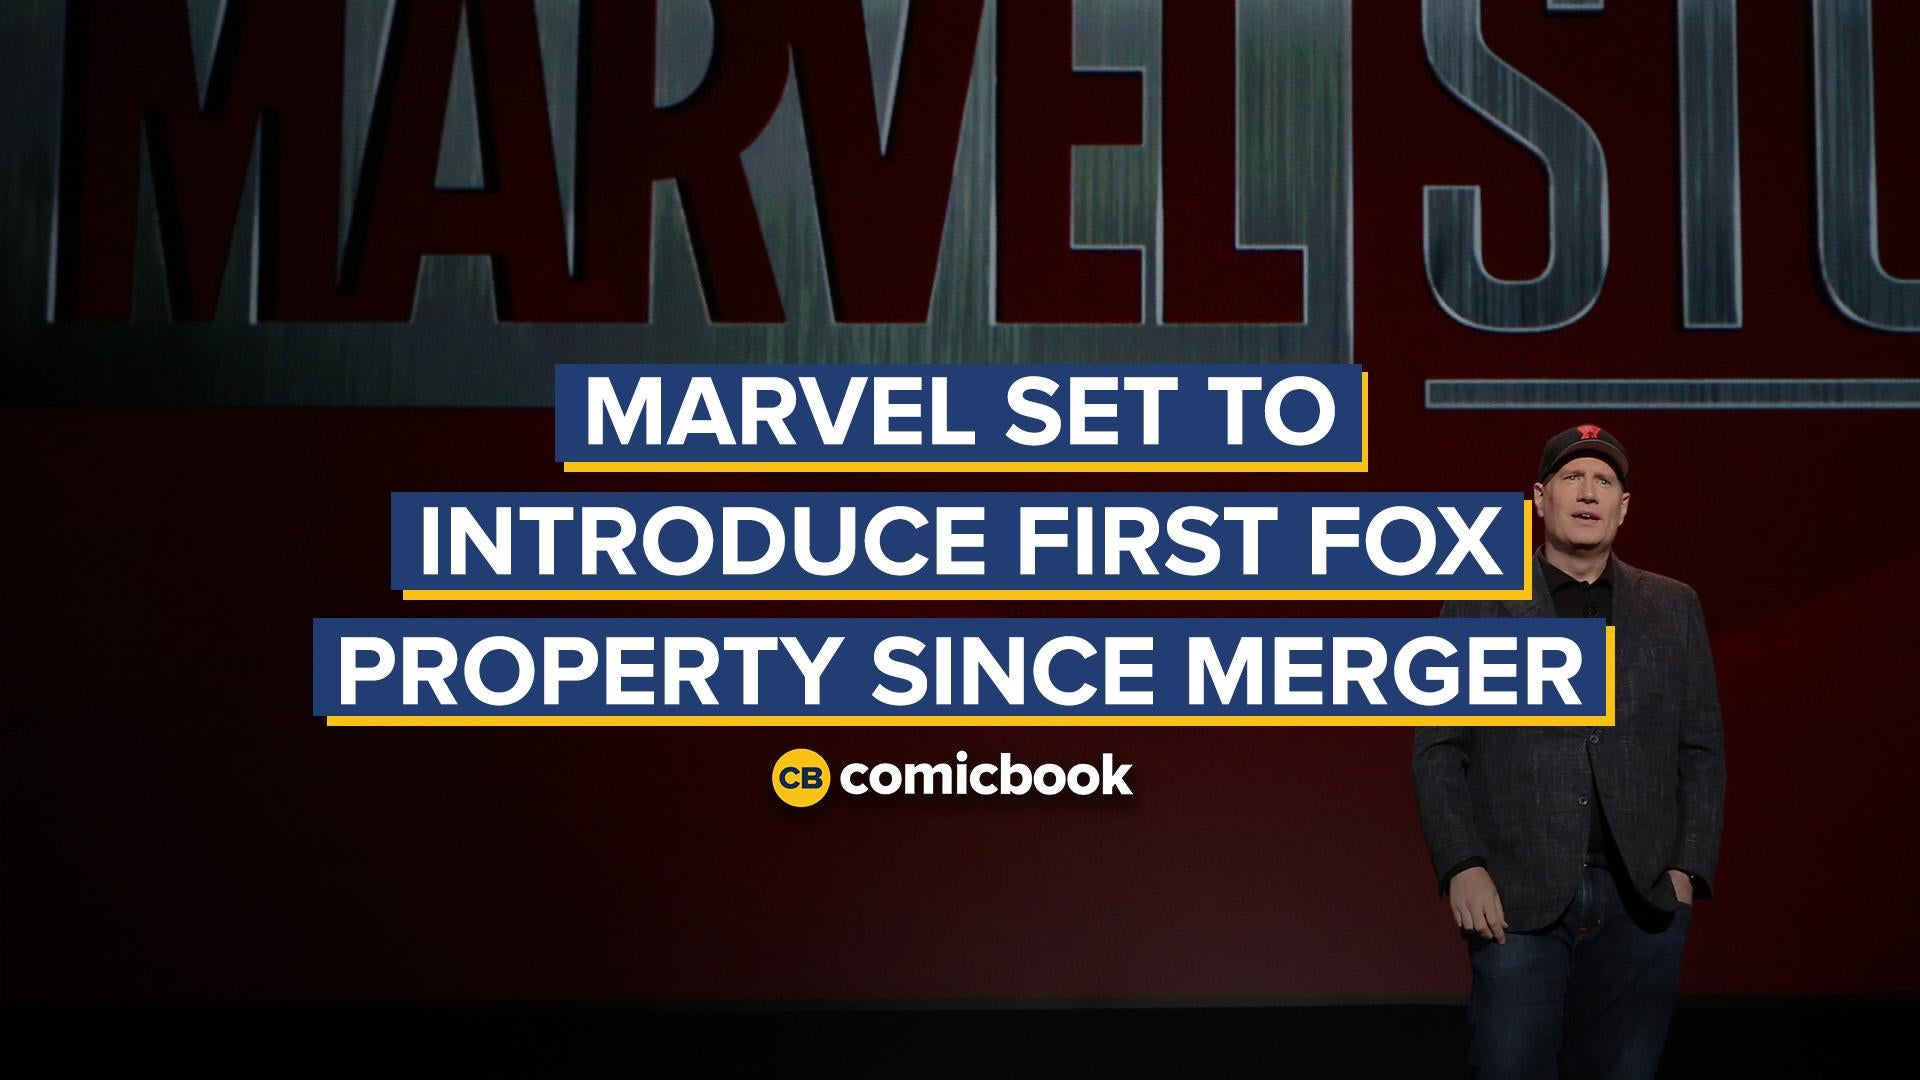 Marvel Set to Introduce First Fox Property Since Merger screen capture